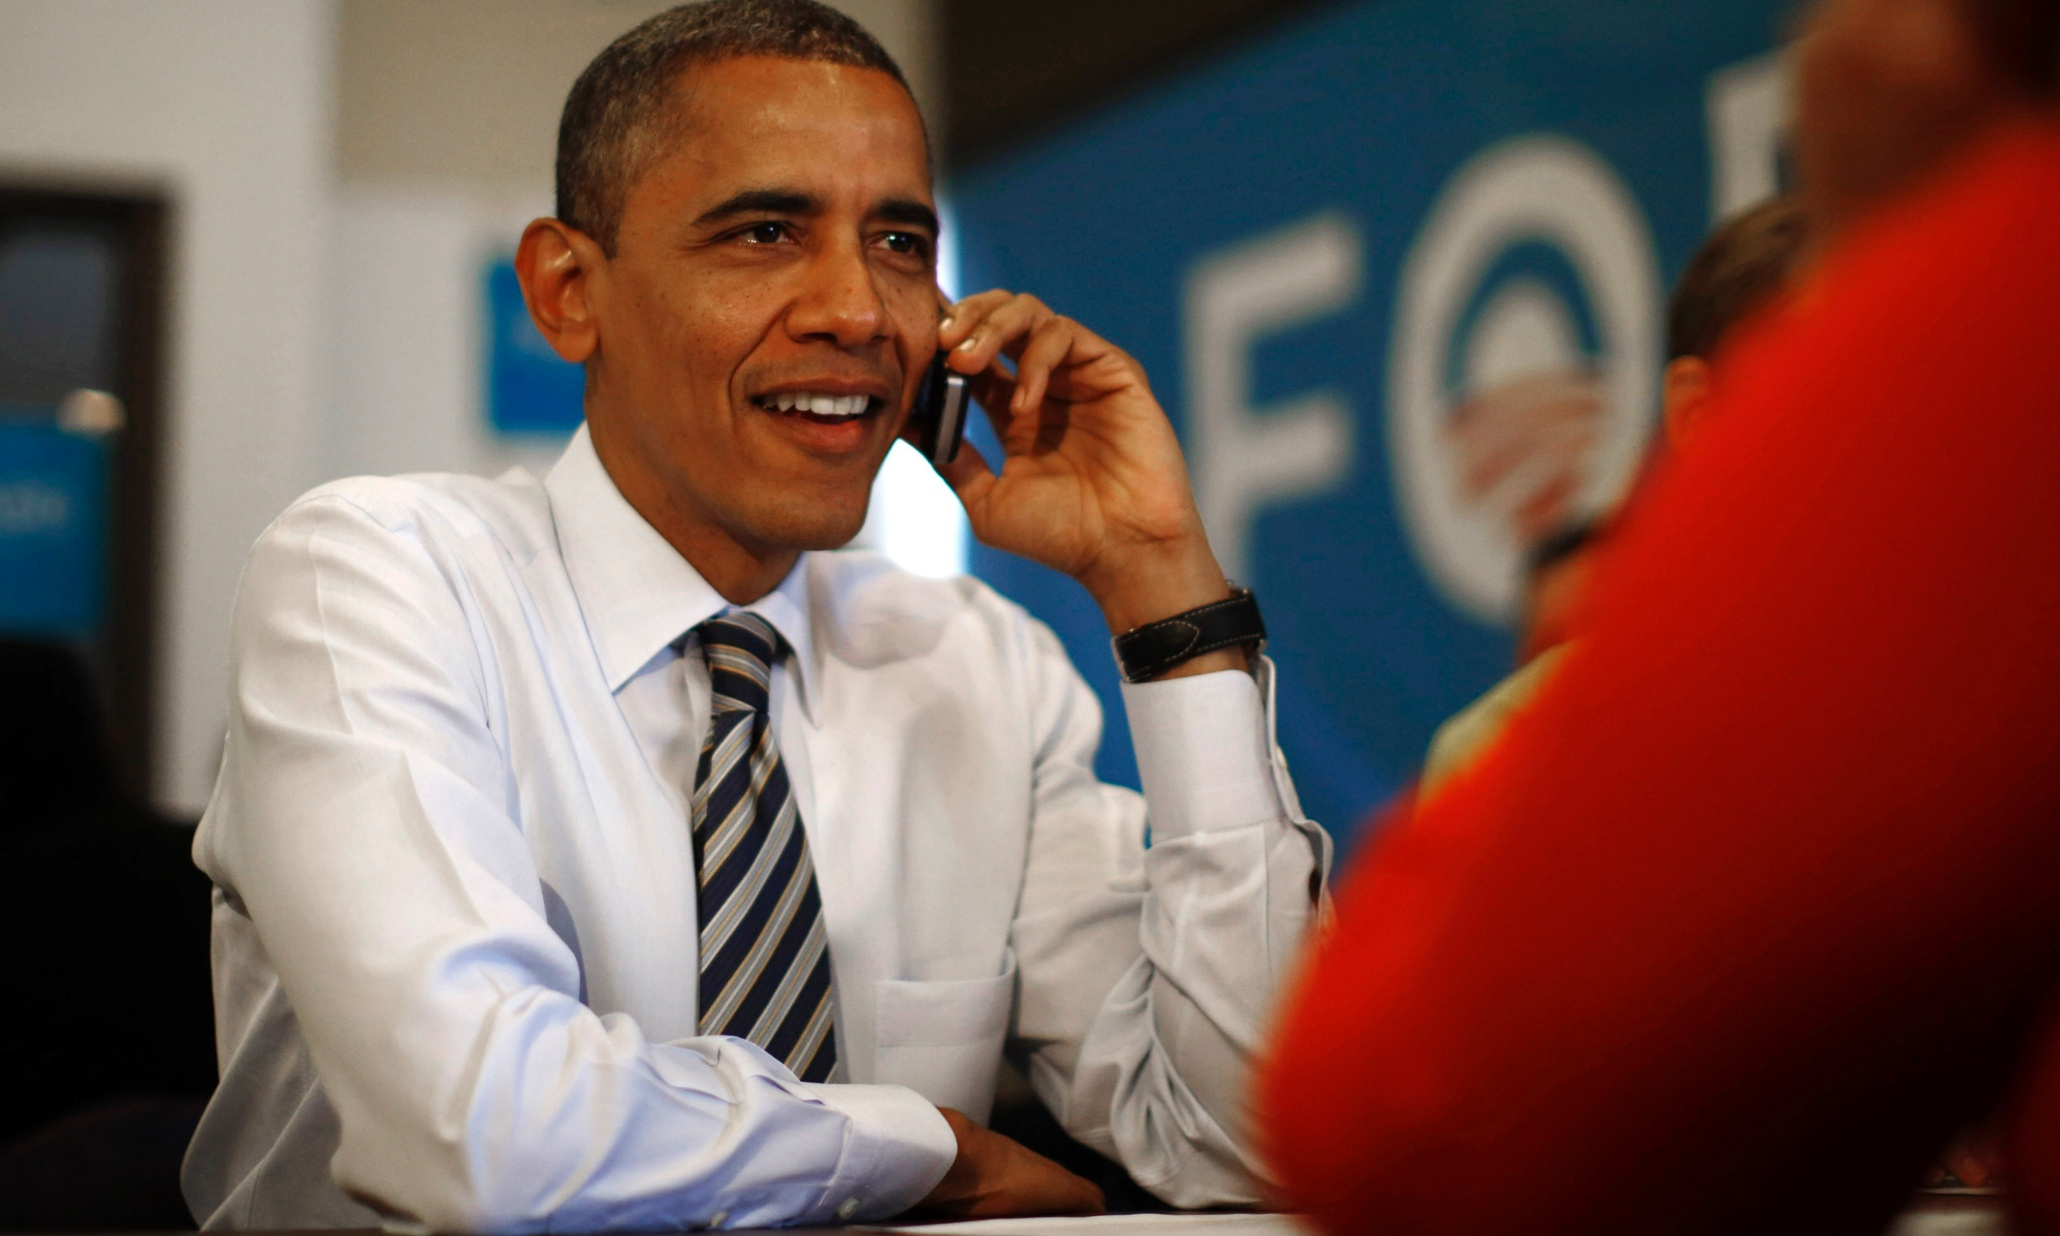 Barack Obama can't have an iPhone 'for security reasons ...